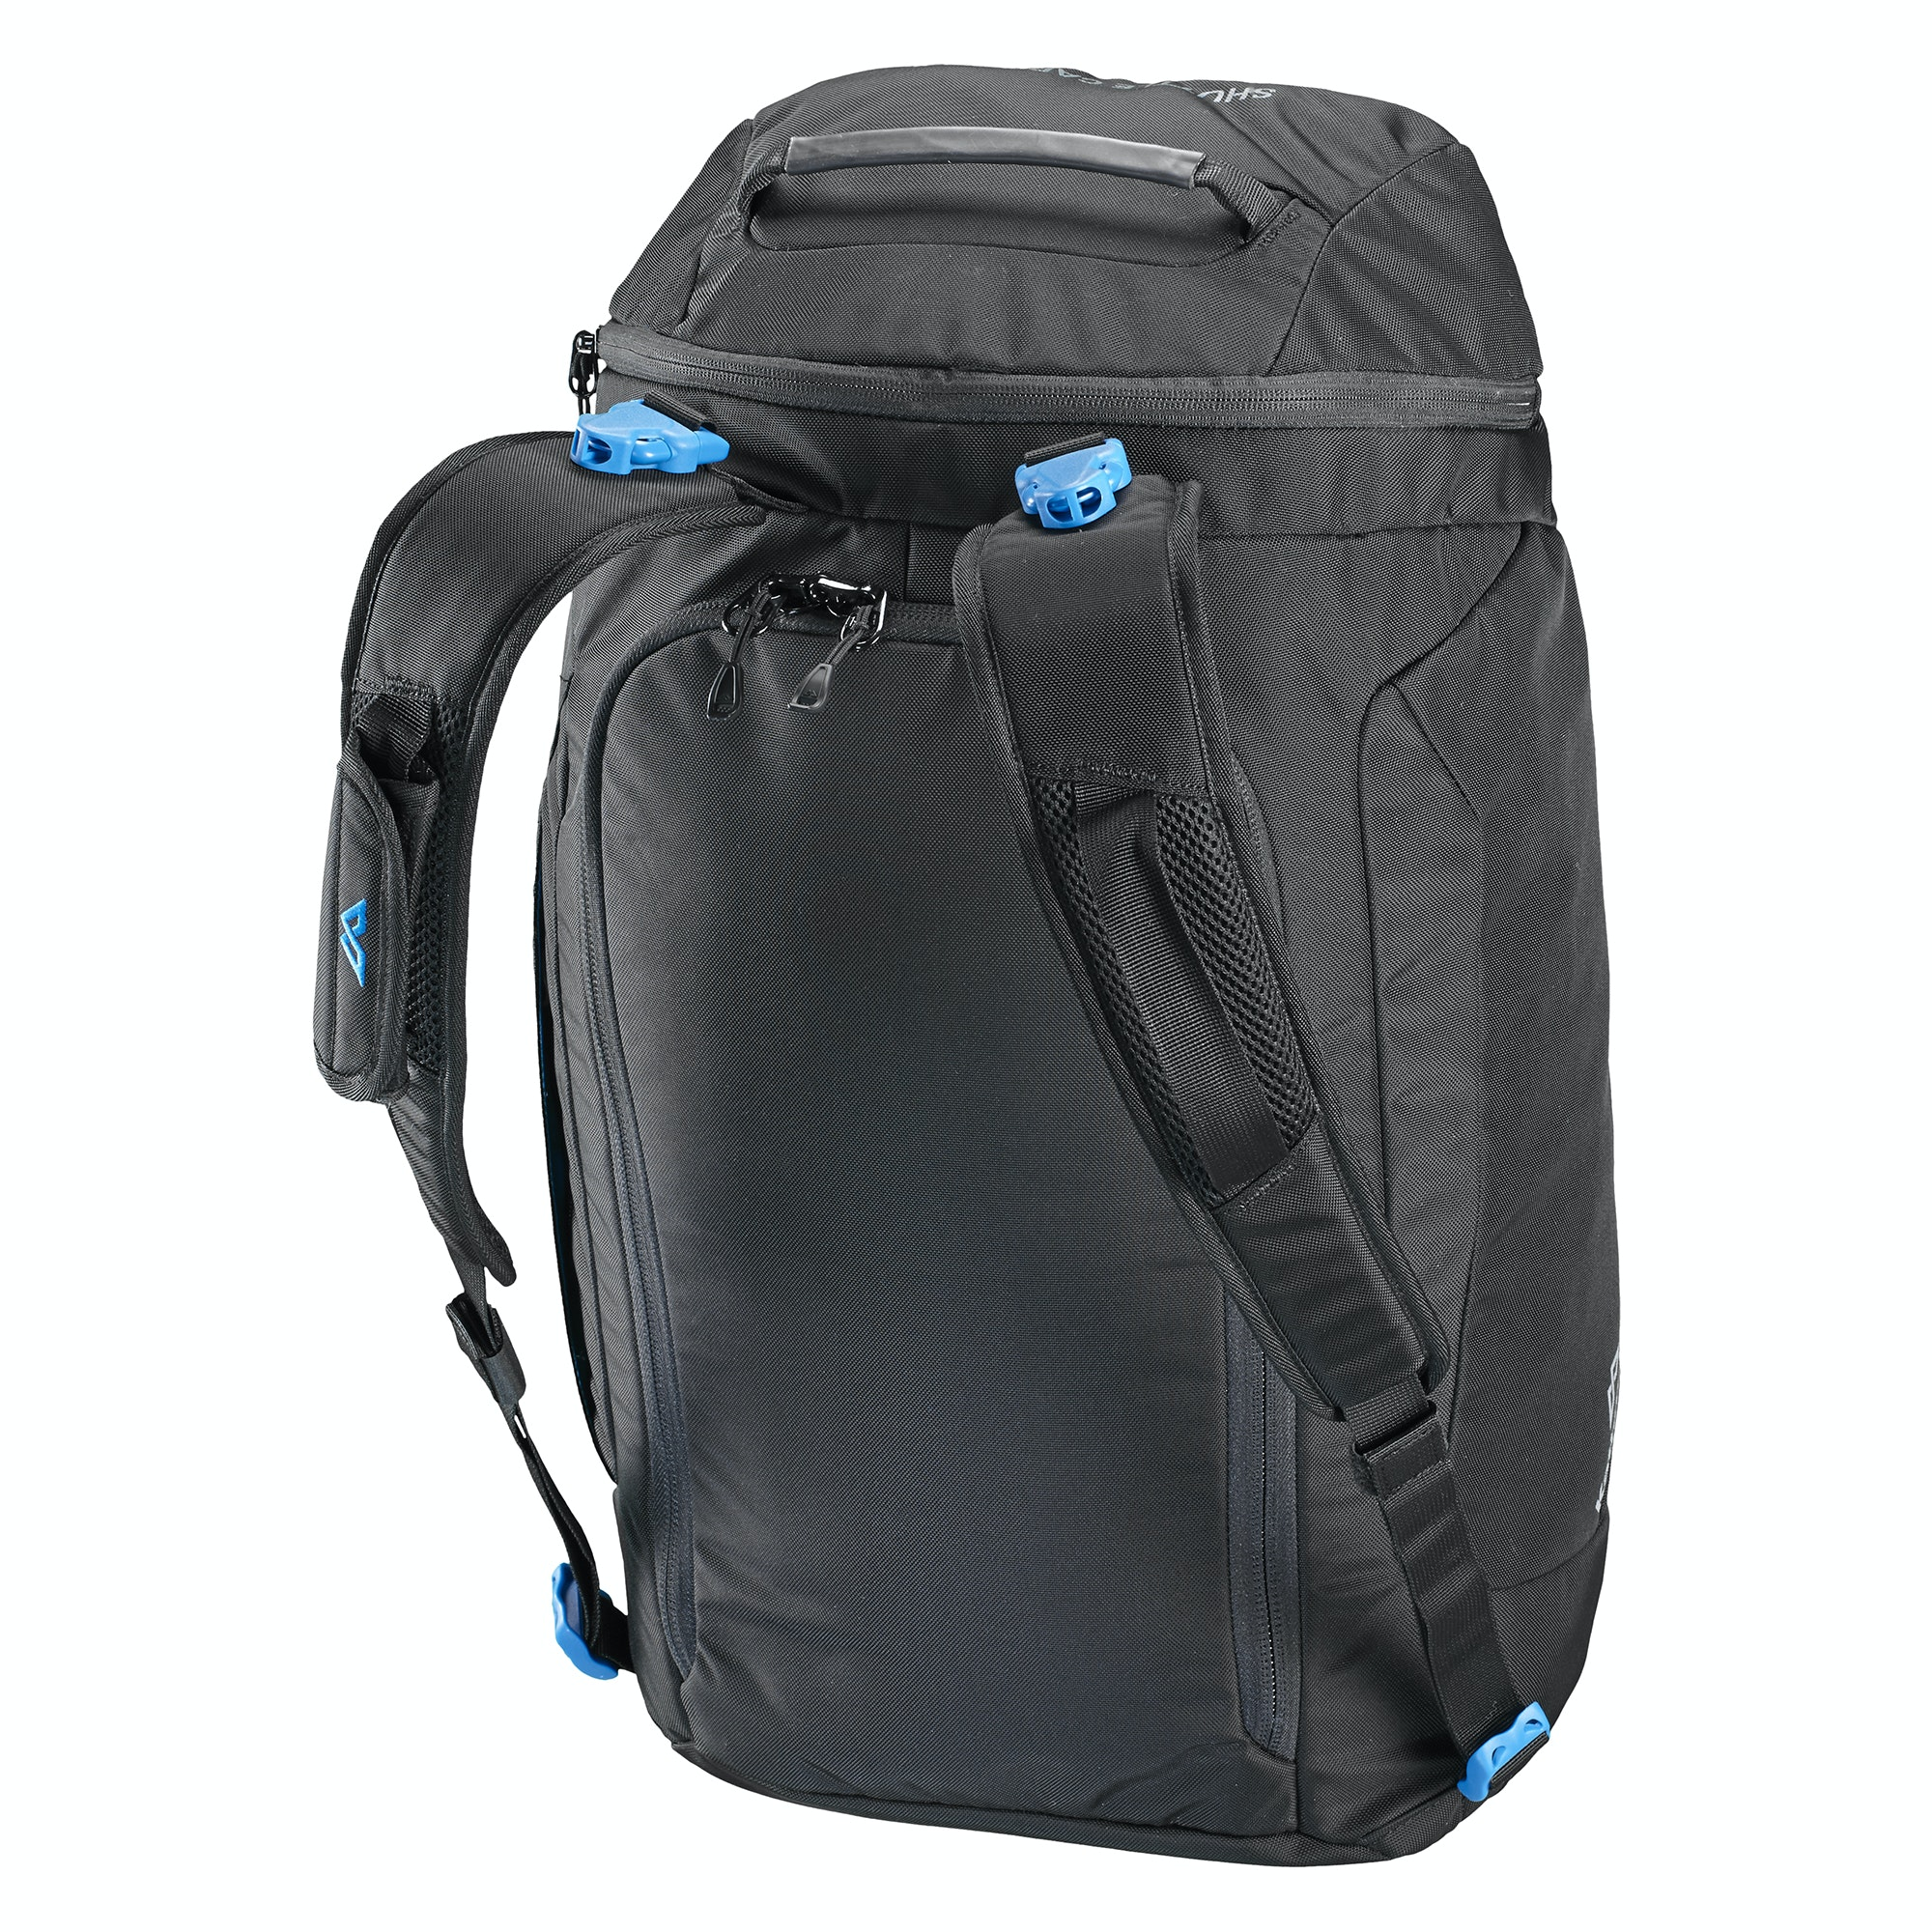 Hiking Backpacks Clearance Melbourne - CEAGESP 6b8c92e1a